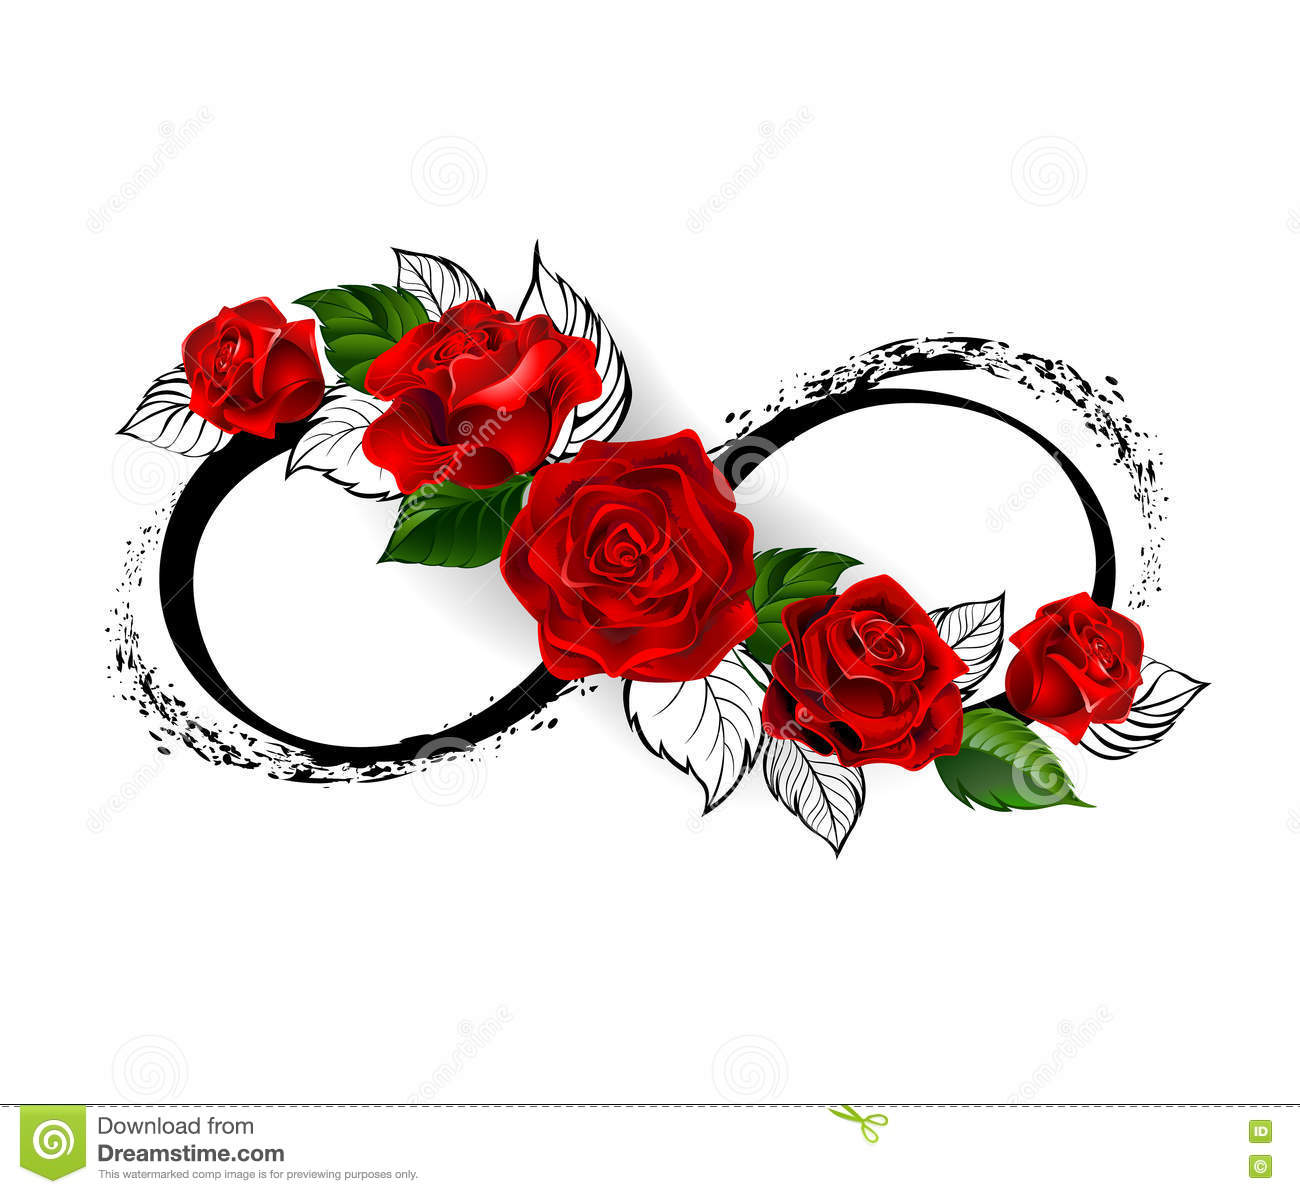 infinity symbol with red roses stock vector illustration of forever faith 73333733. Black Bedroom Furniture Sets. Home Design Ideas